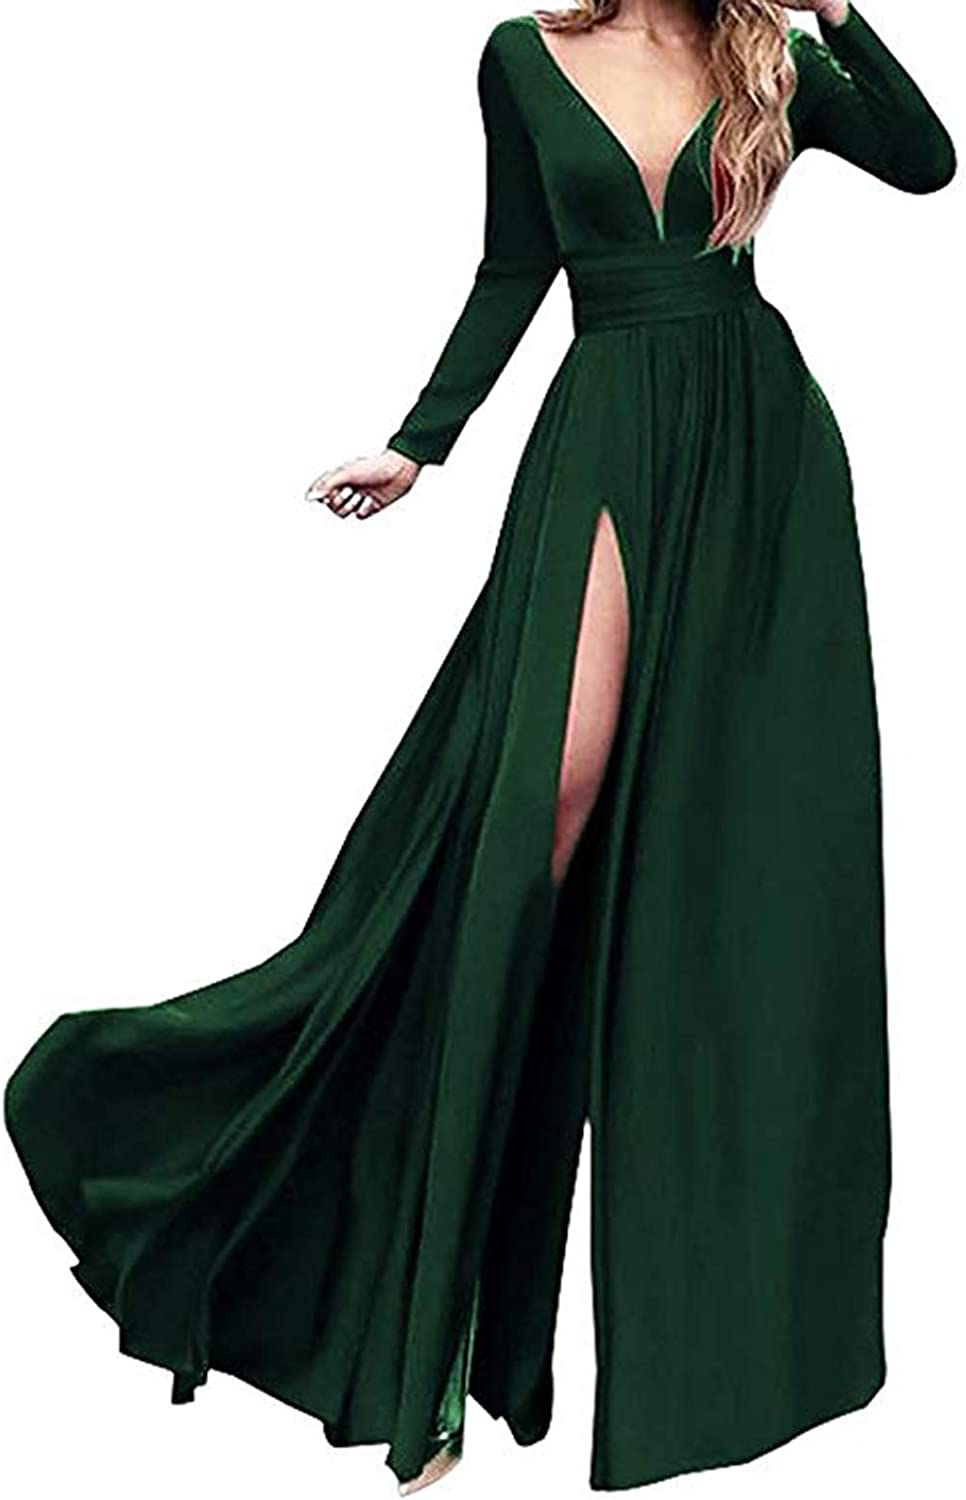 Ri Yun Women's Double VNeck Long Sleeve Prom Dresses Long 2019 Side Slit Formal Evening Ball Gowns